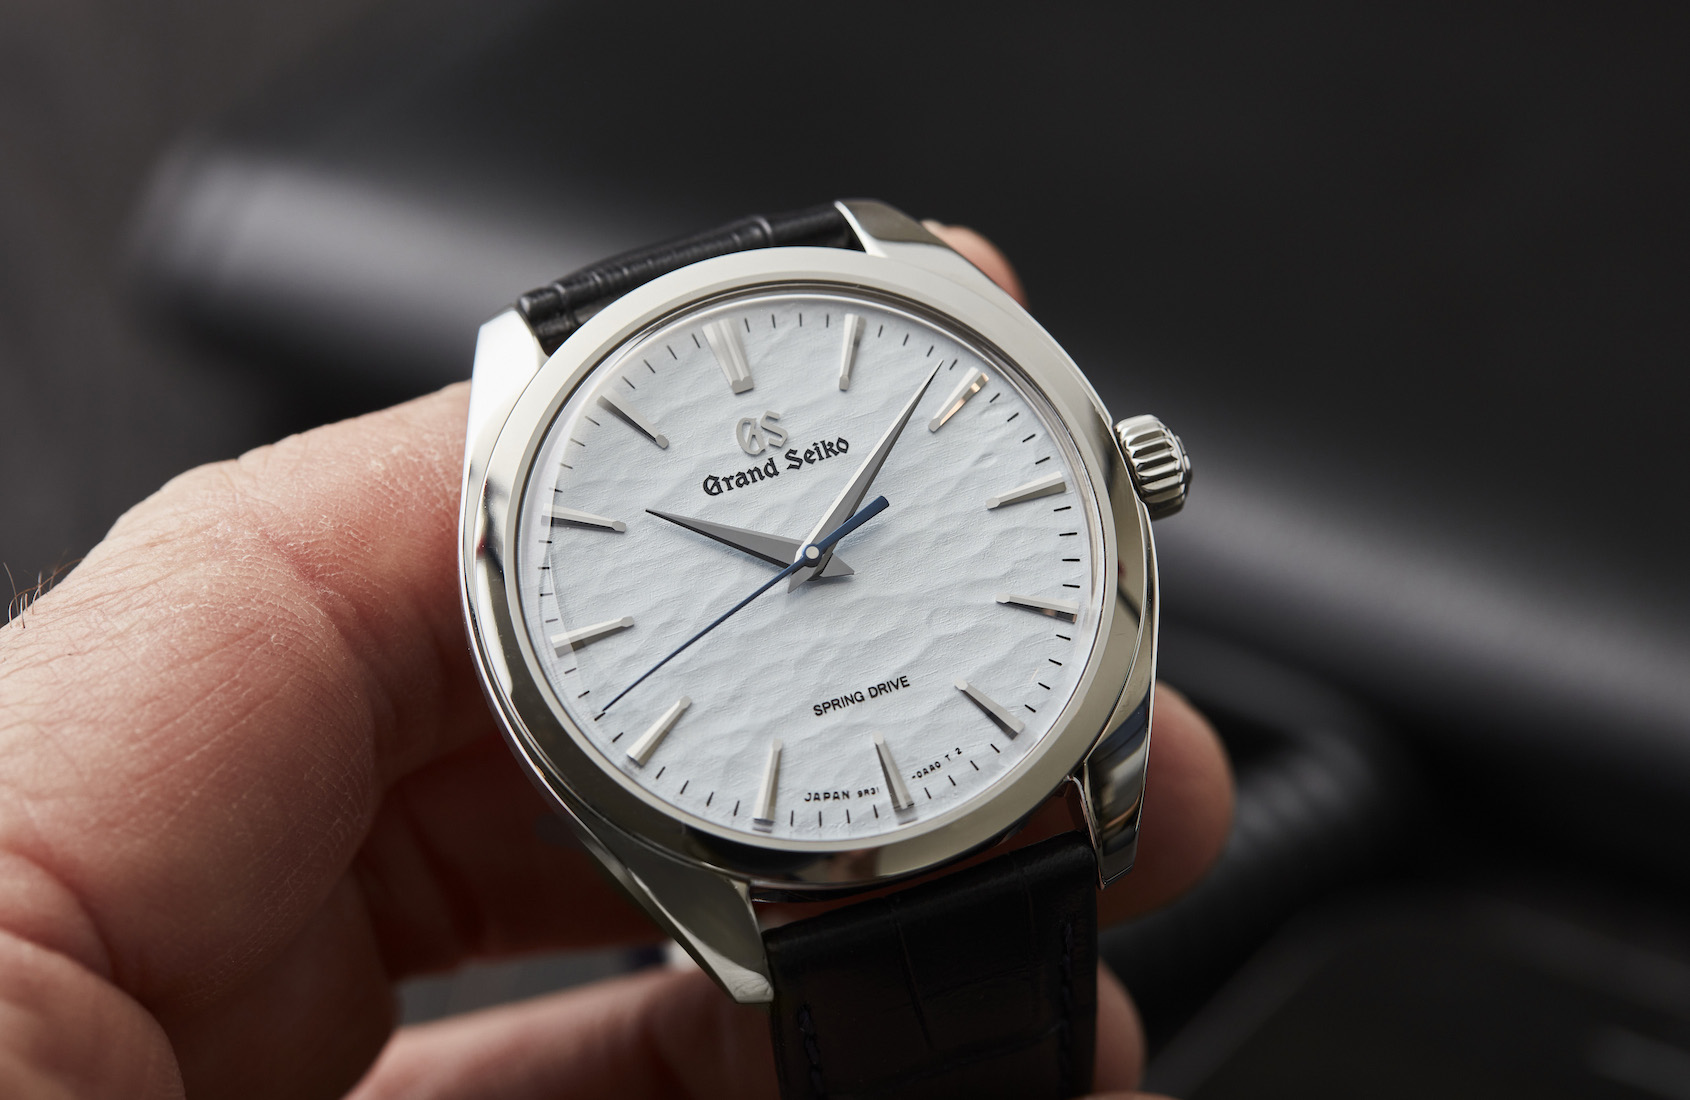 HANDS-ON: The Grand Seiko SBGY007 may just be the pared back snowflake you've been waiting for